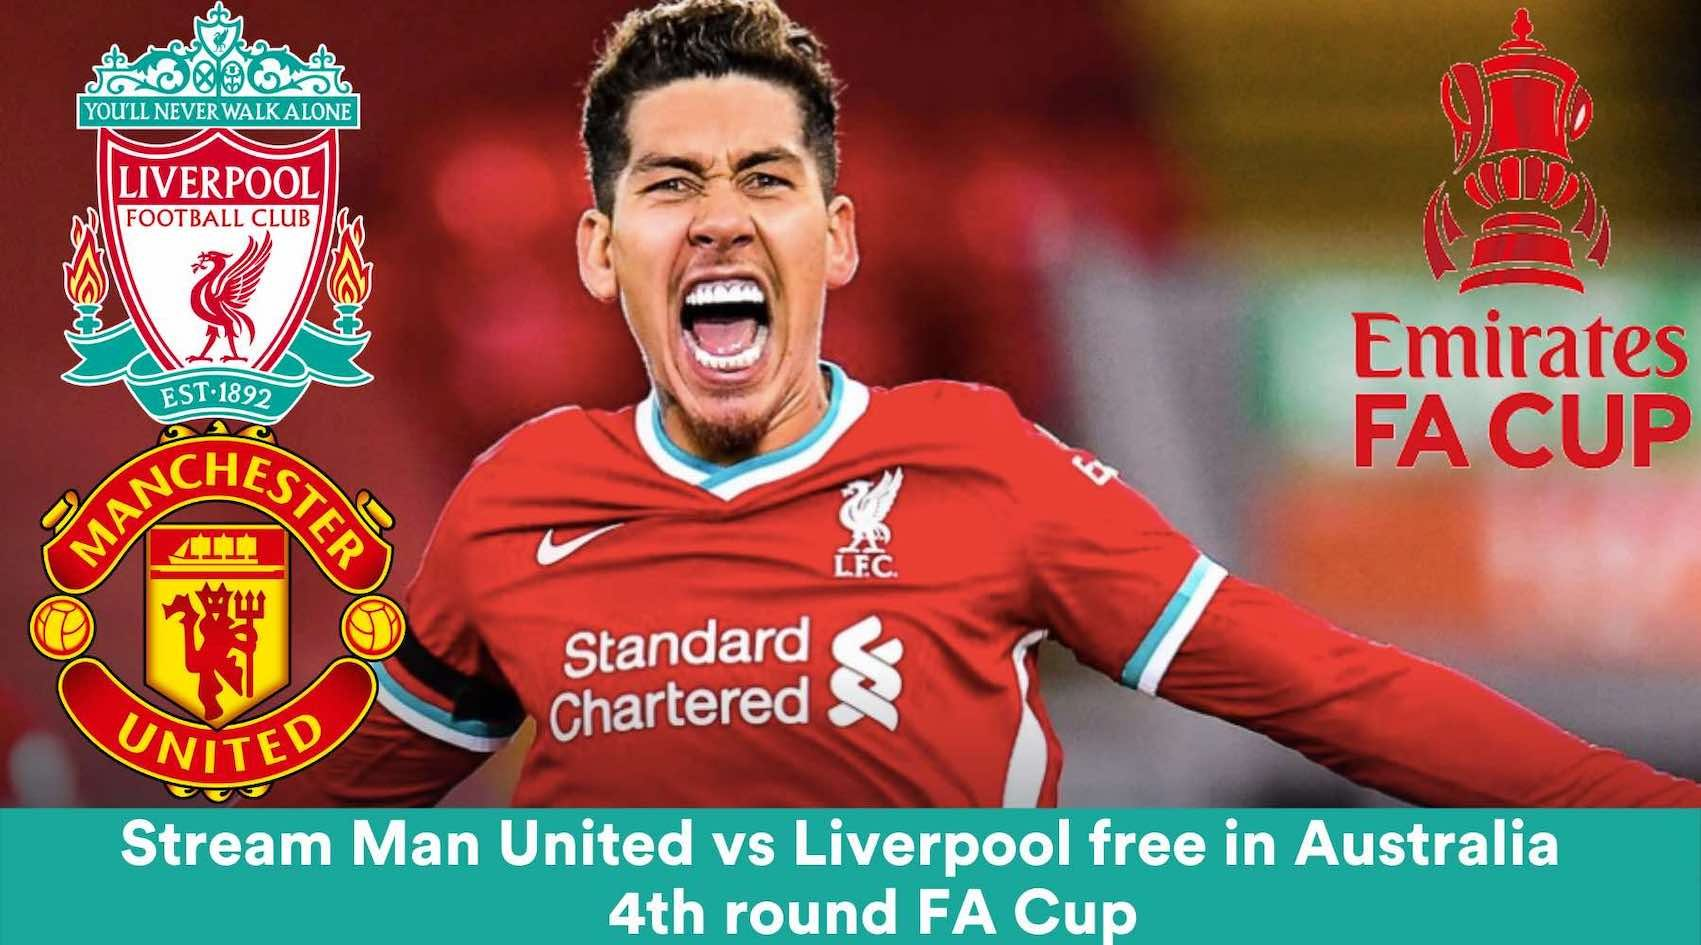 Man United vs Liverpool FA Cup fourth round: Start time and how to watch